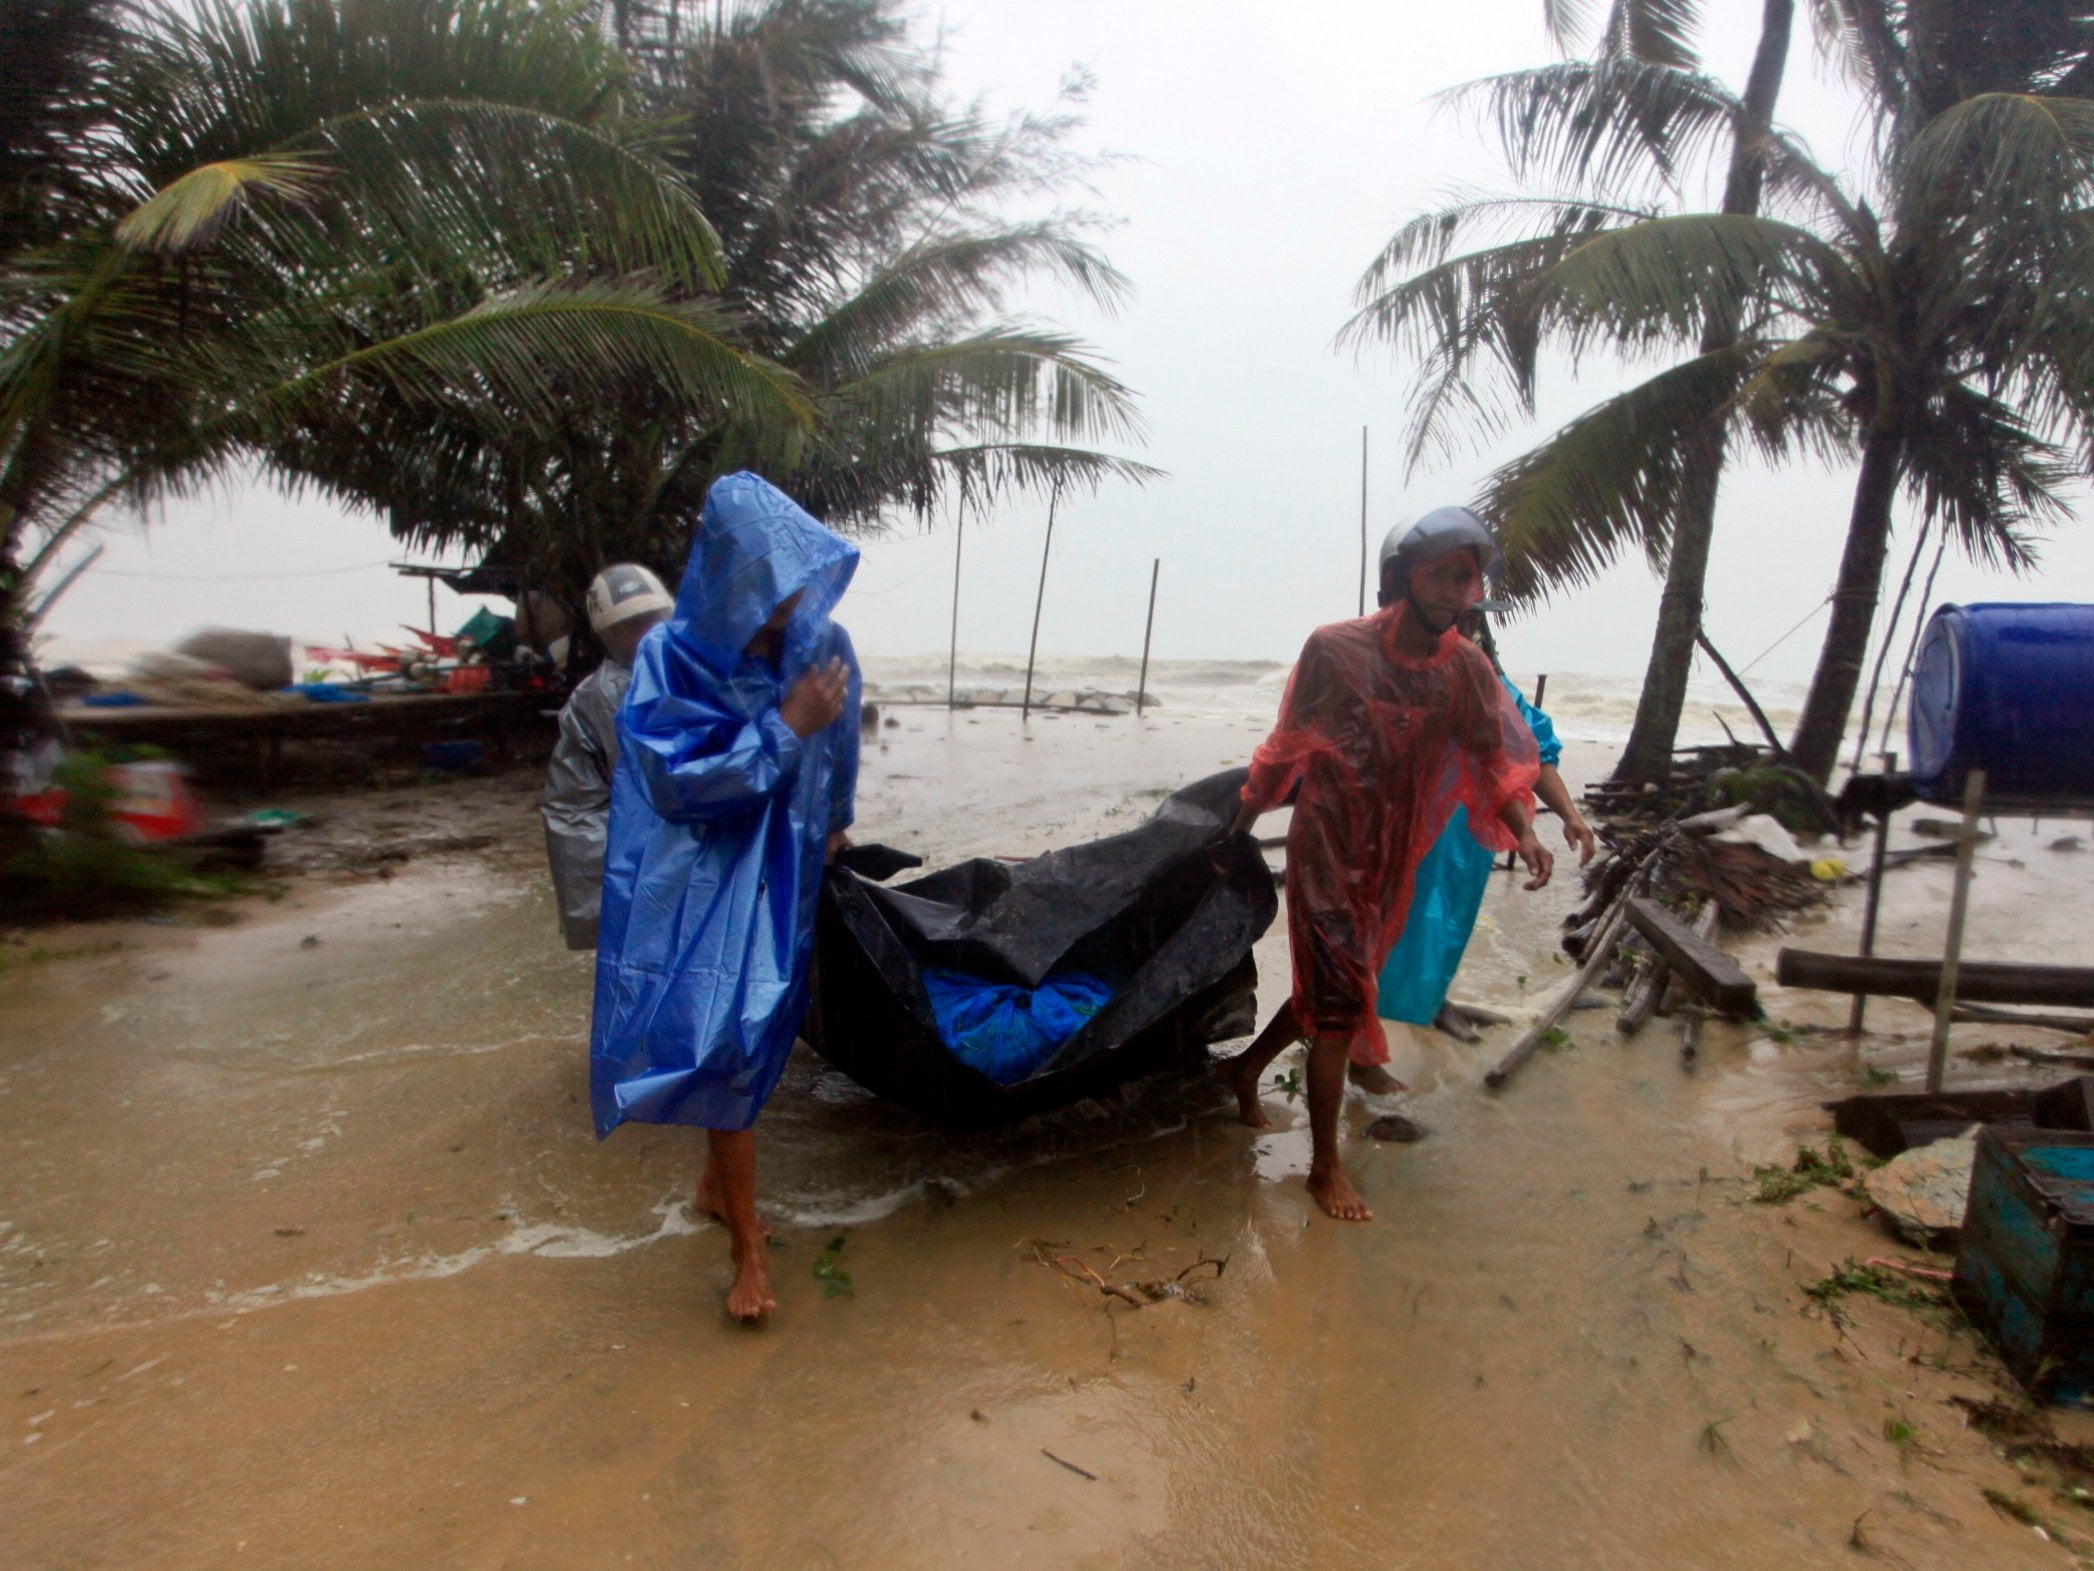 storm-pabuk-one-person-dead-as-thailands-worst-storm-in-decades-makes-landfall-the-independent Storm Pabuk: One person dead as Thailand's worst storm in decades makes landfall - The Independent